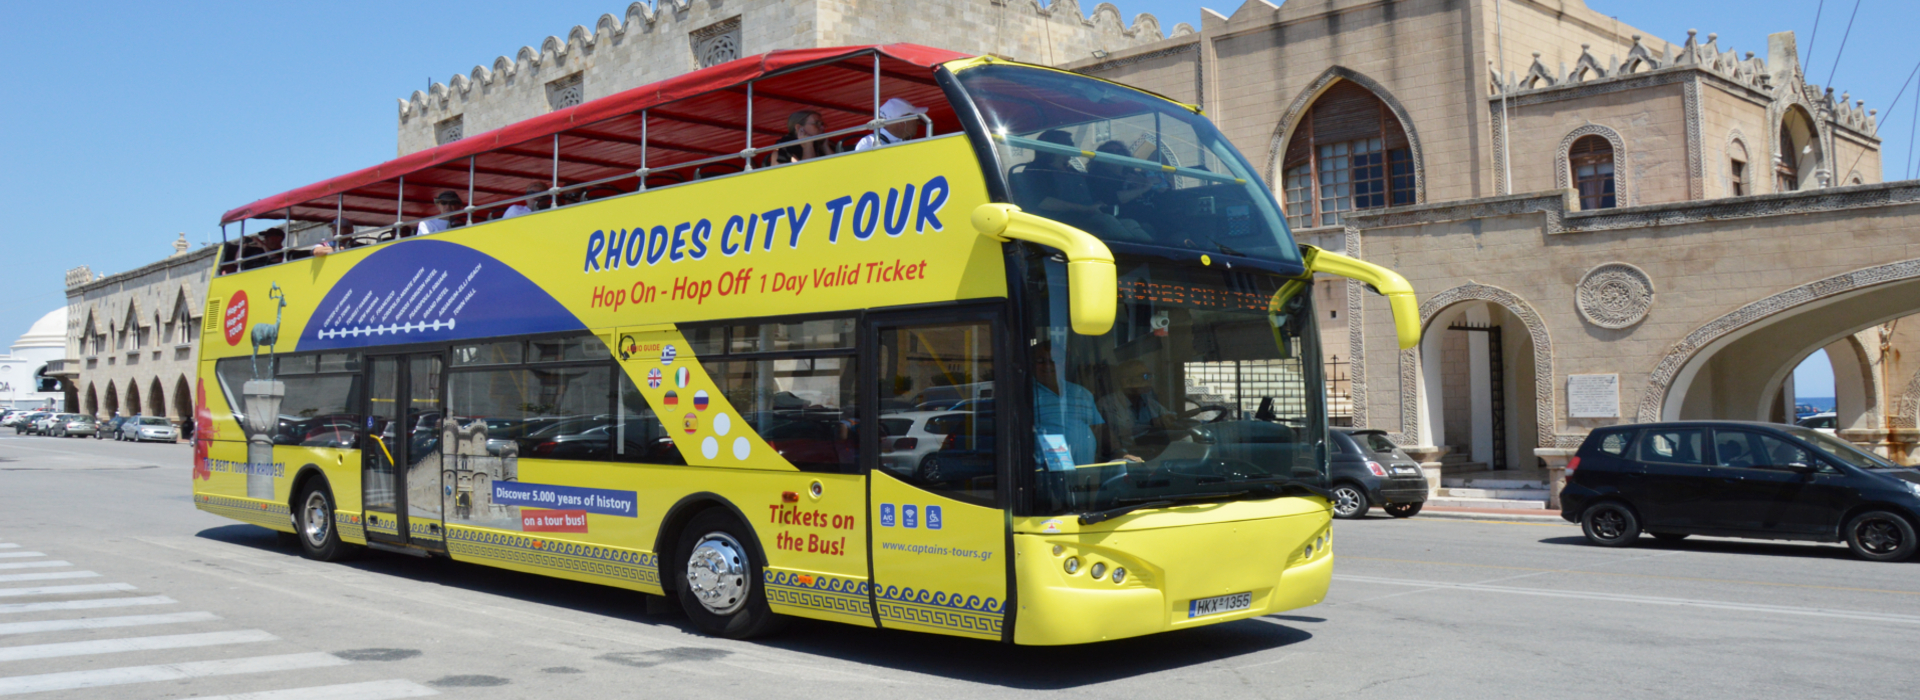 Rhodes City Tour with OpenBus by Captains Tours